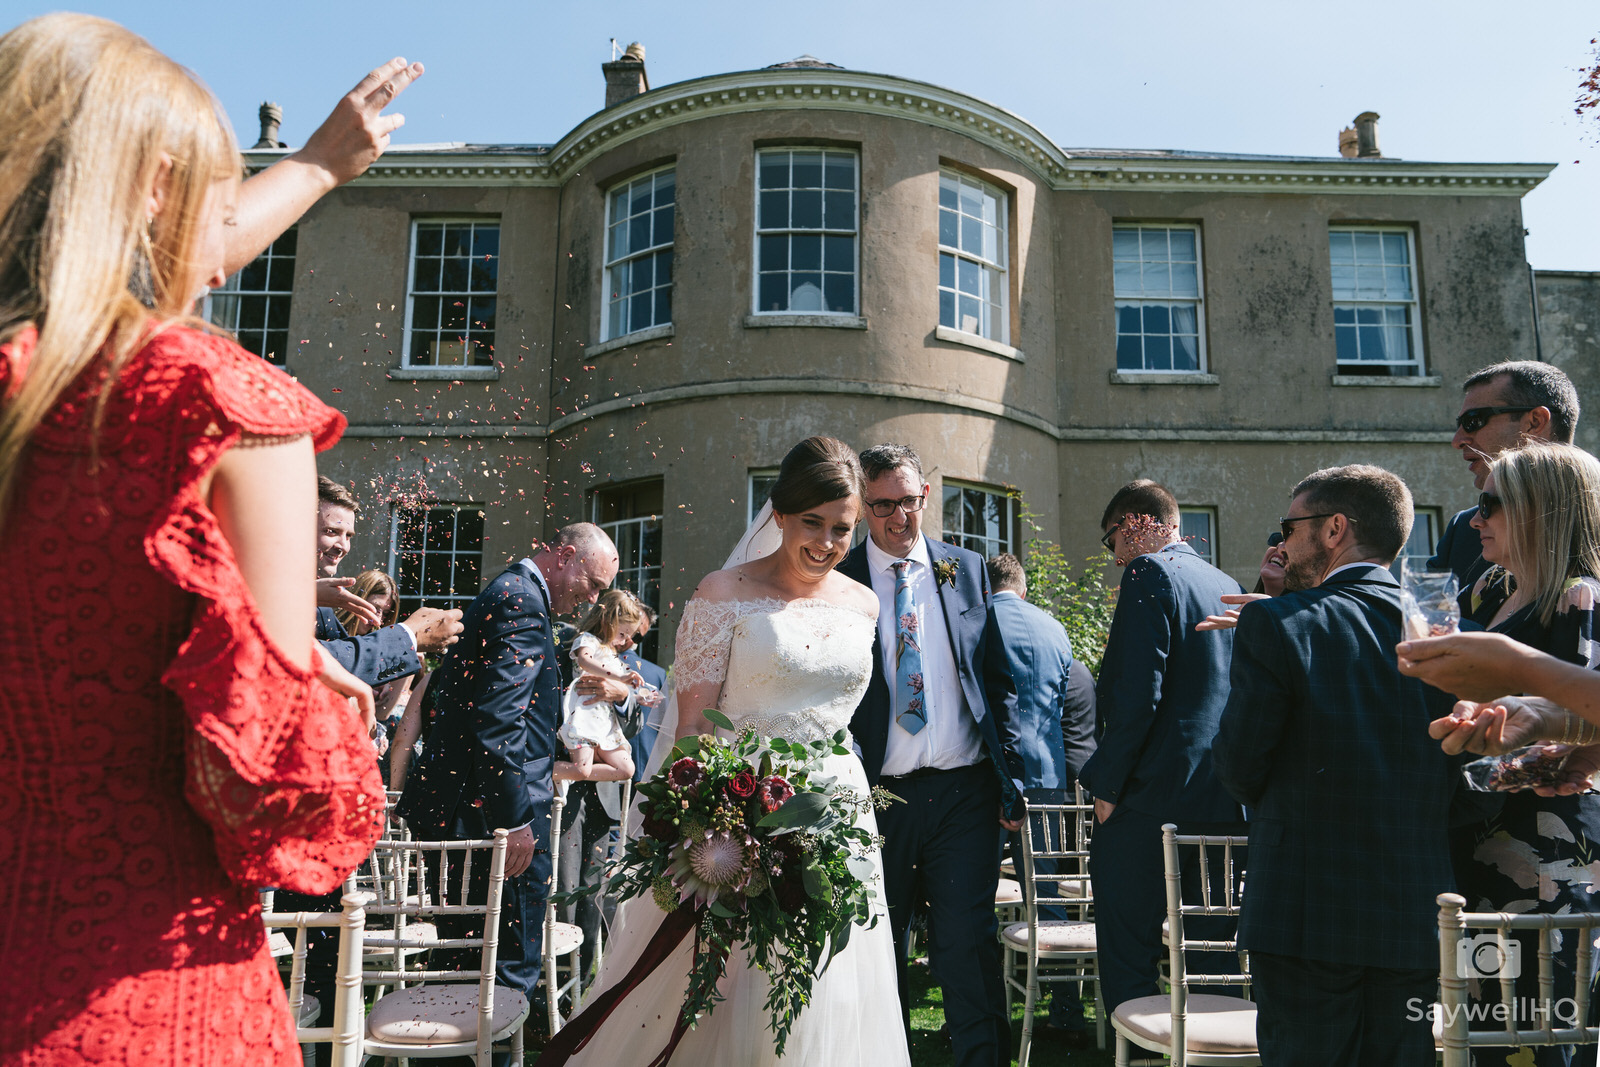 Wedding photographer Nottingham - bride and groom walking through the confetti at East Bridgford Hill wedding venue